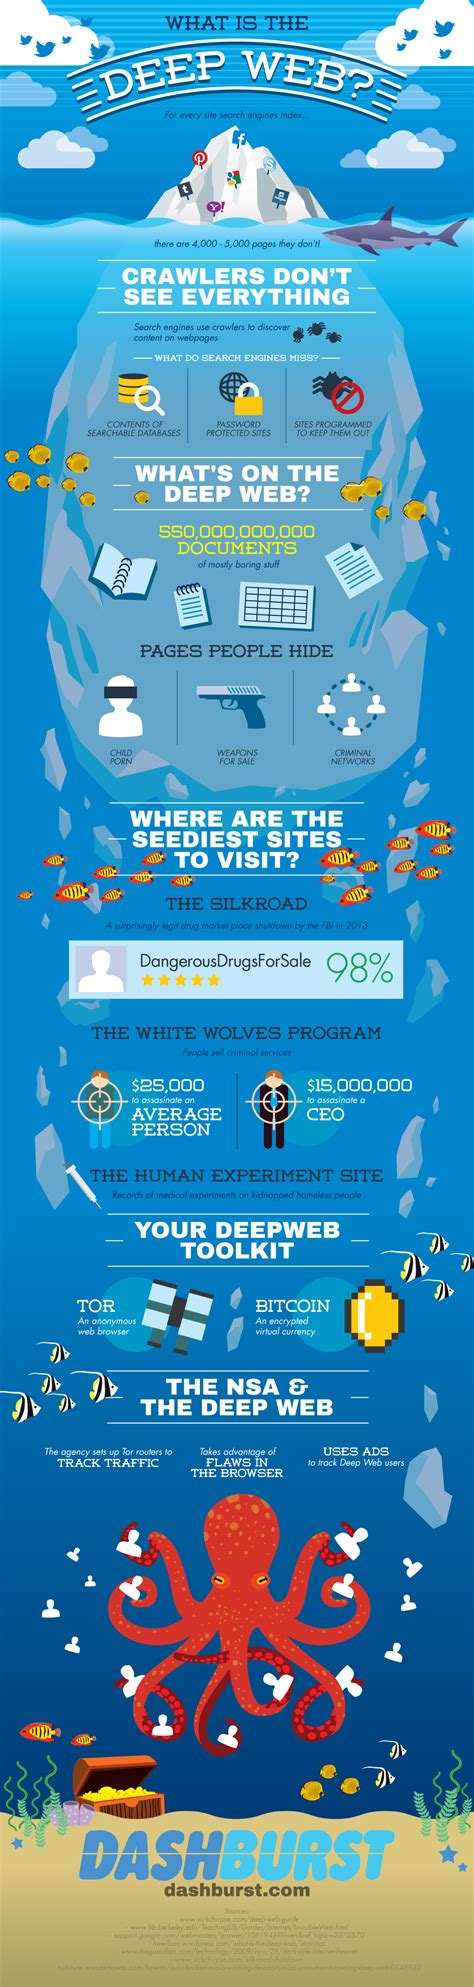 What is the deep web infographic